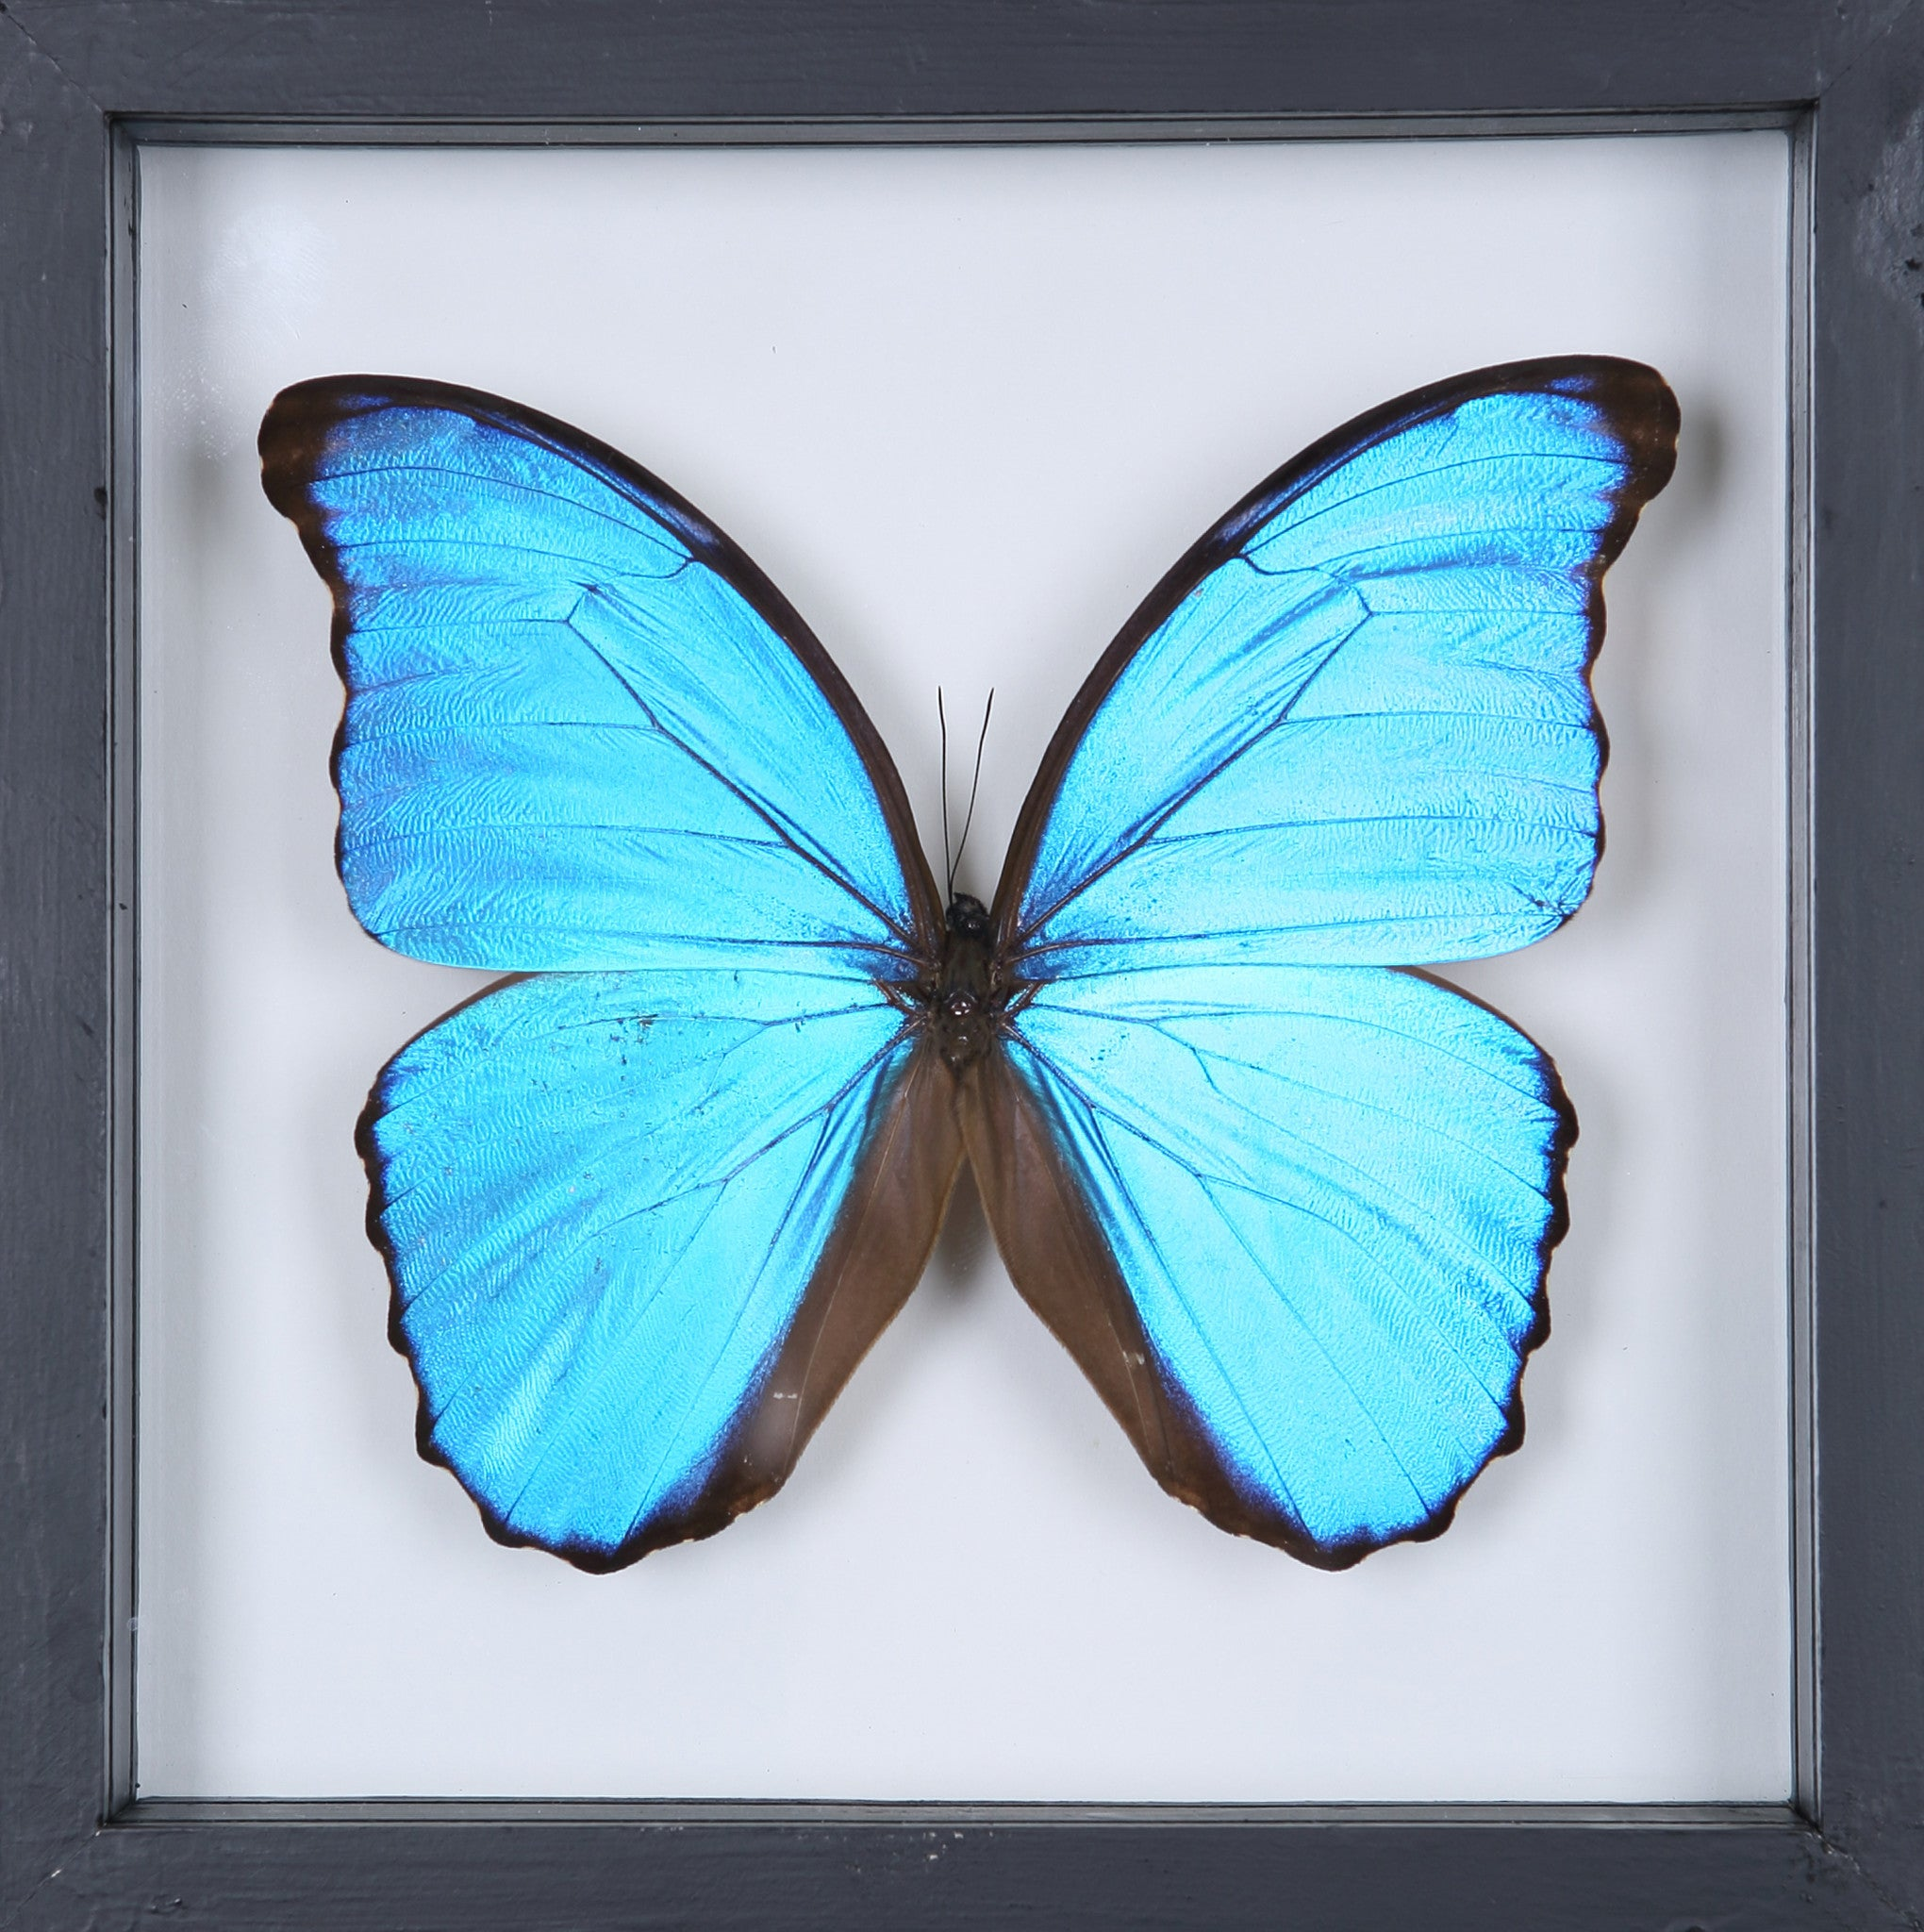 See Through Glass The Giant Blue Morpho Butterfly Framed Butterfly Natural